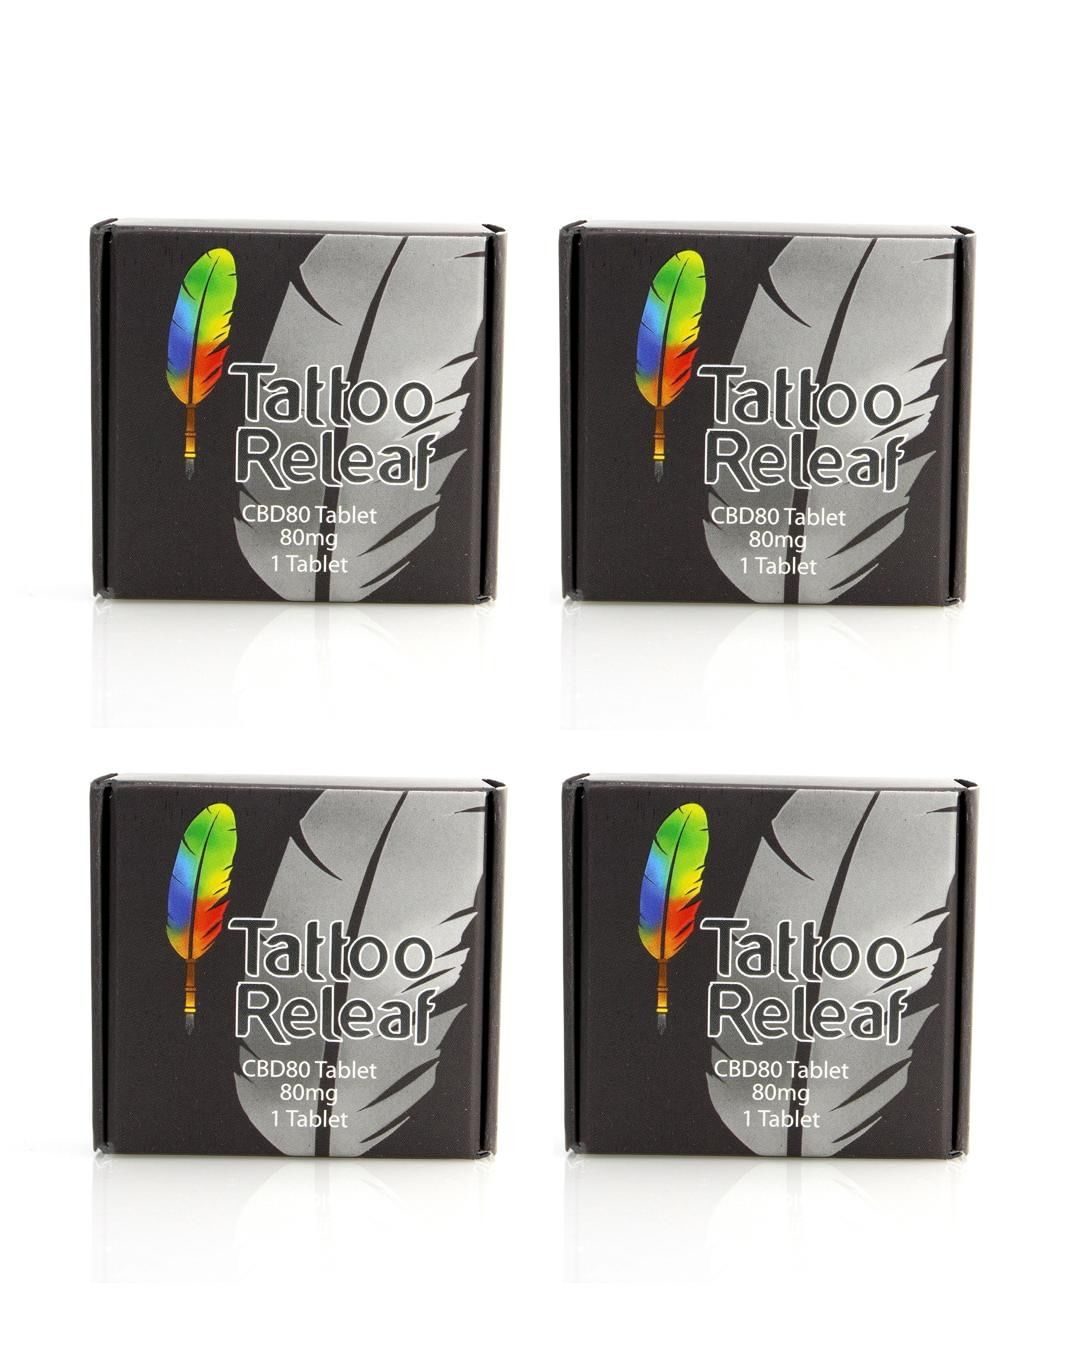 Tattoo Releaf 80mg CBD Rapid Dissolving Tablet